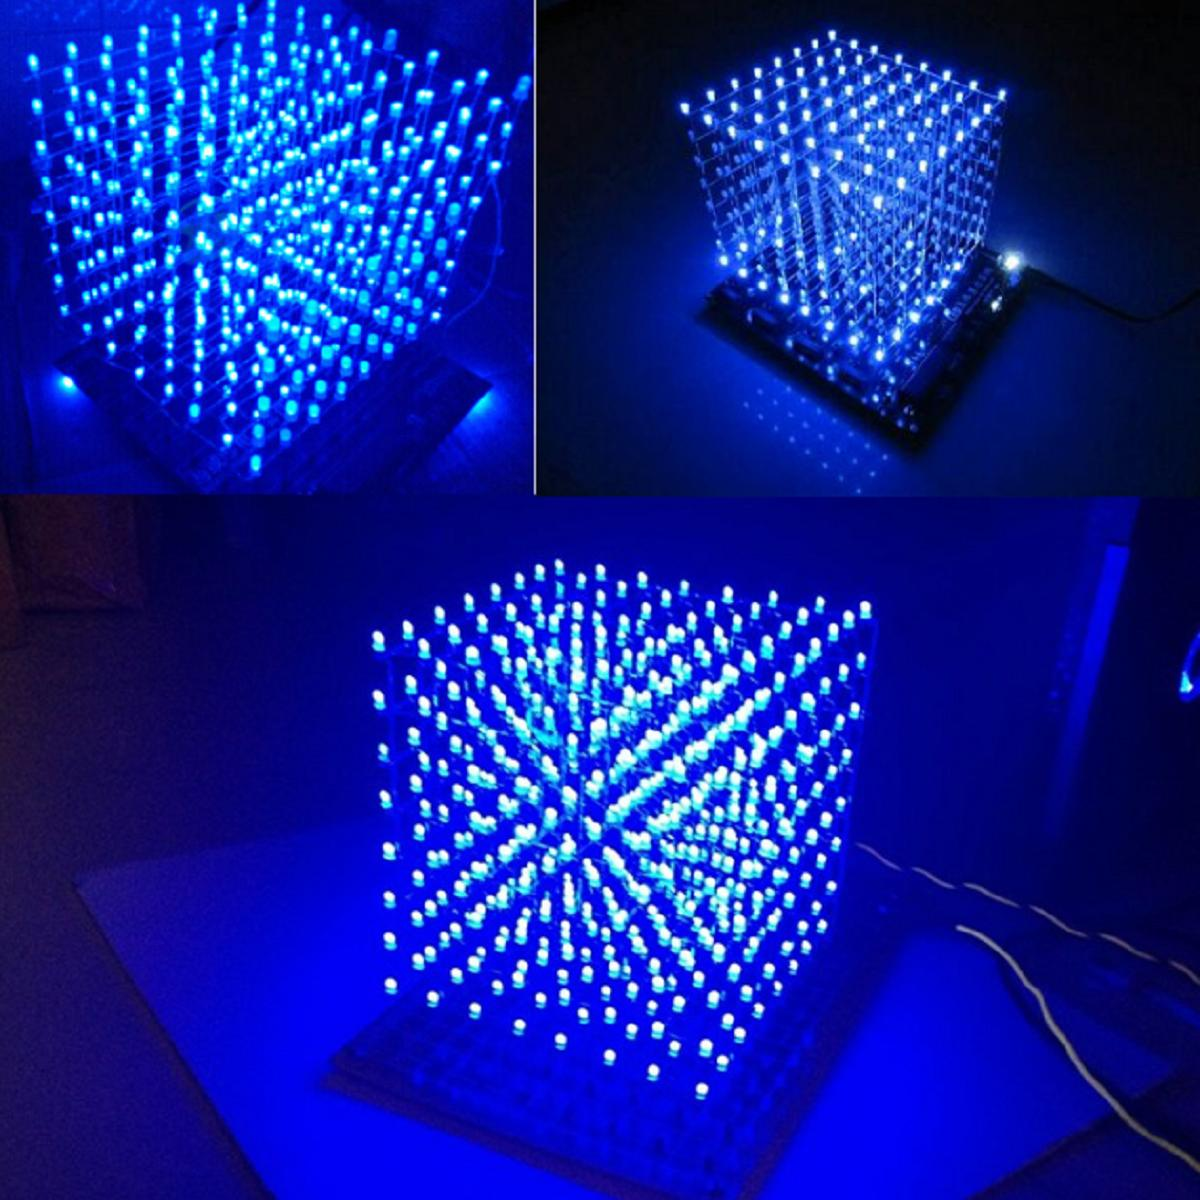 Back To Search Resultsconsumer Electronics Leory 8x8x8 512 Led Fog Lamp Diy 3d Led Light Cube Kit Electronic Kit With Accessory Protective Box For Music Funny Display